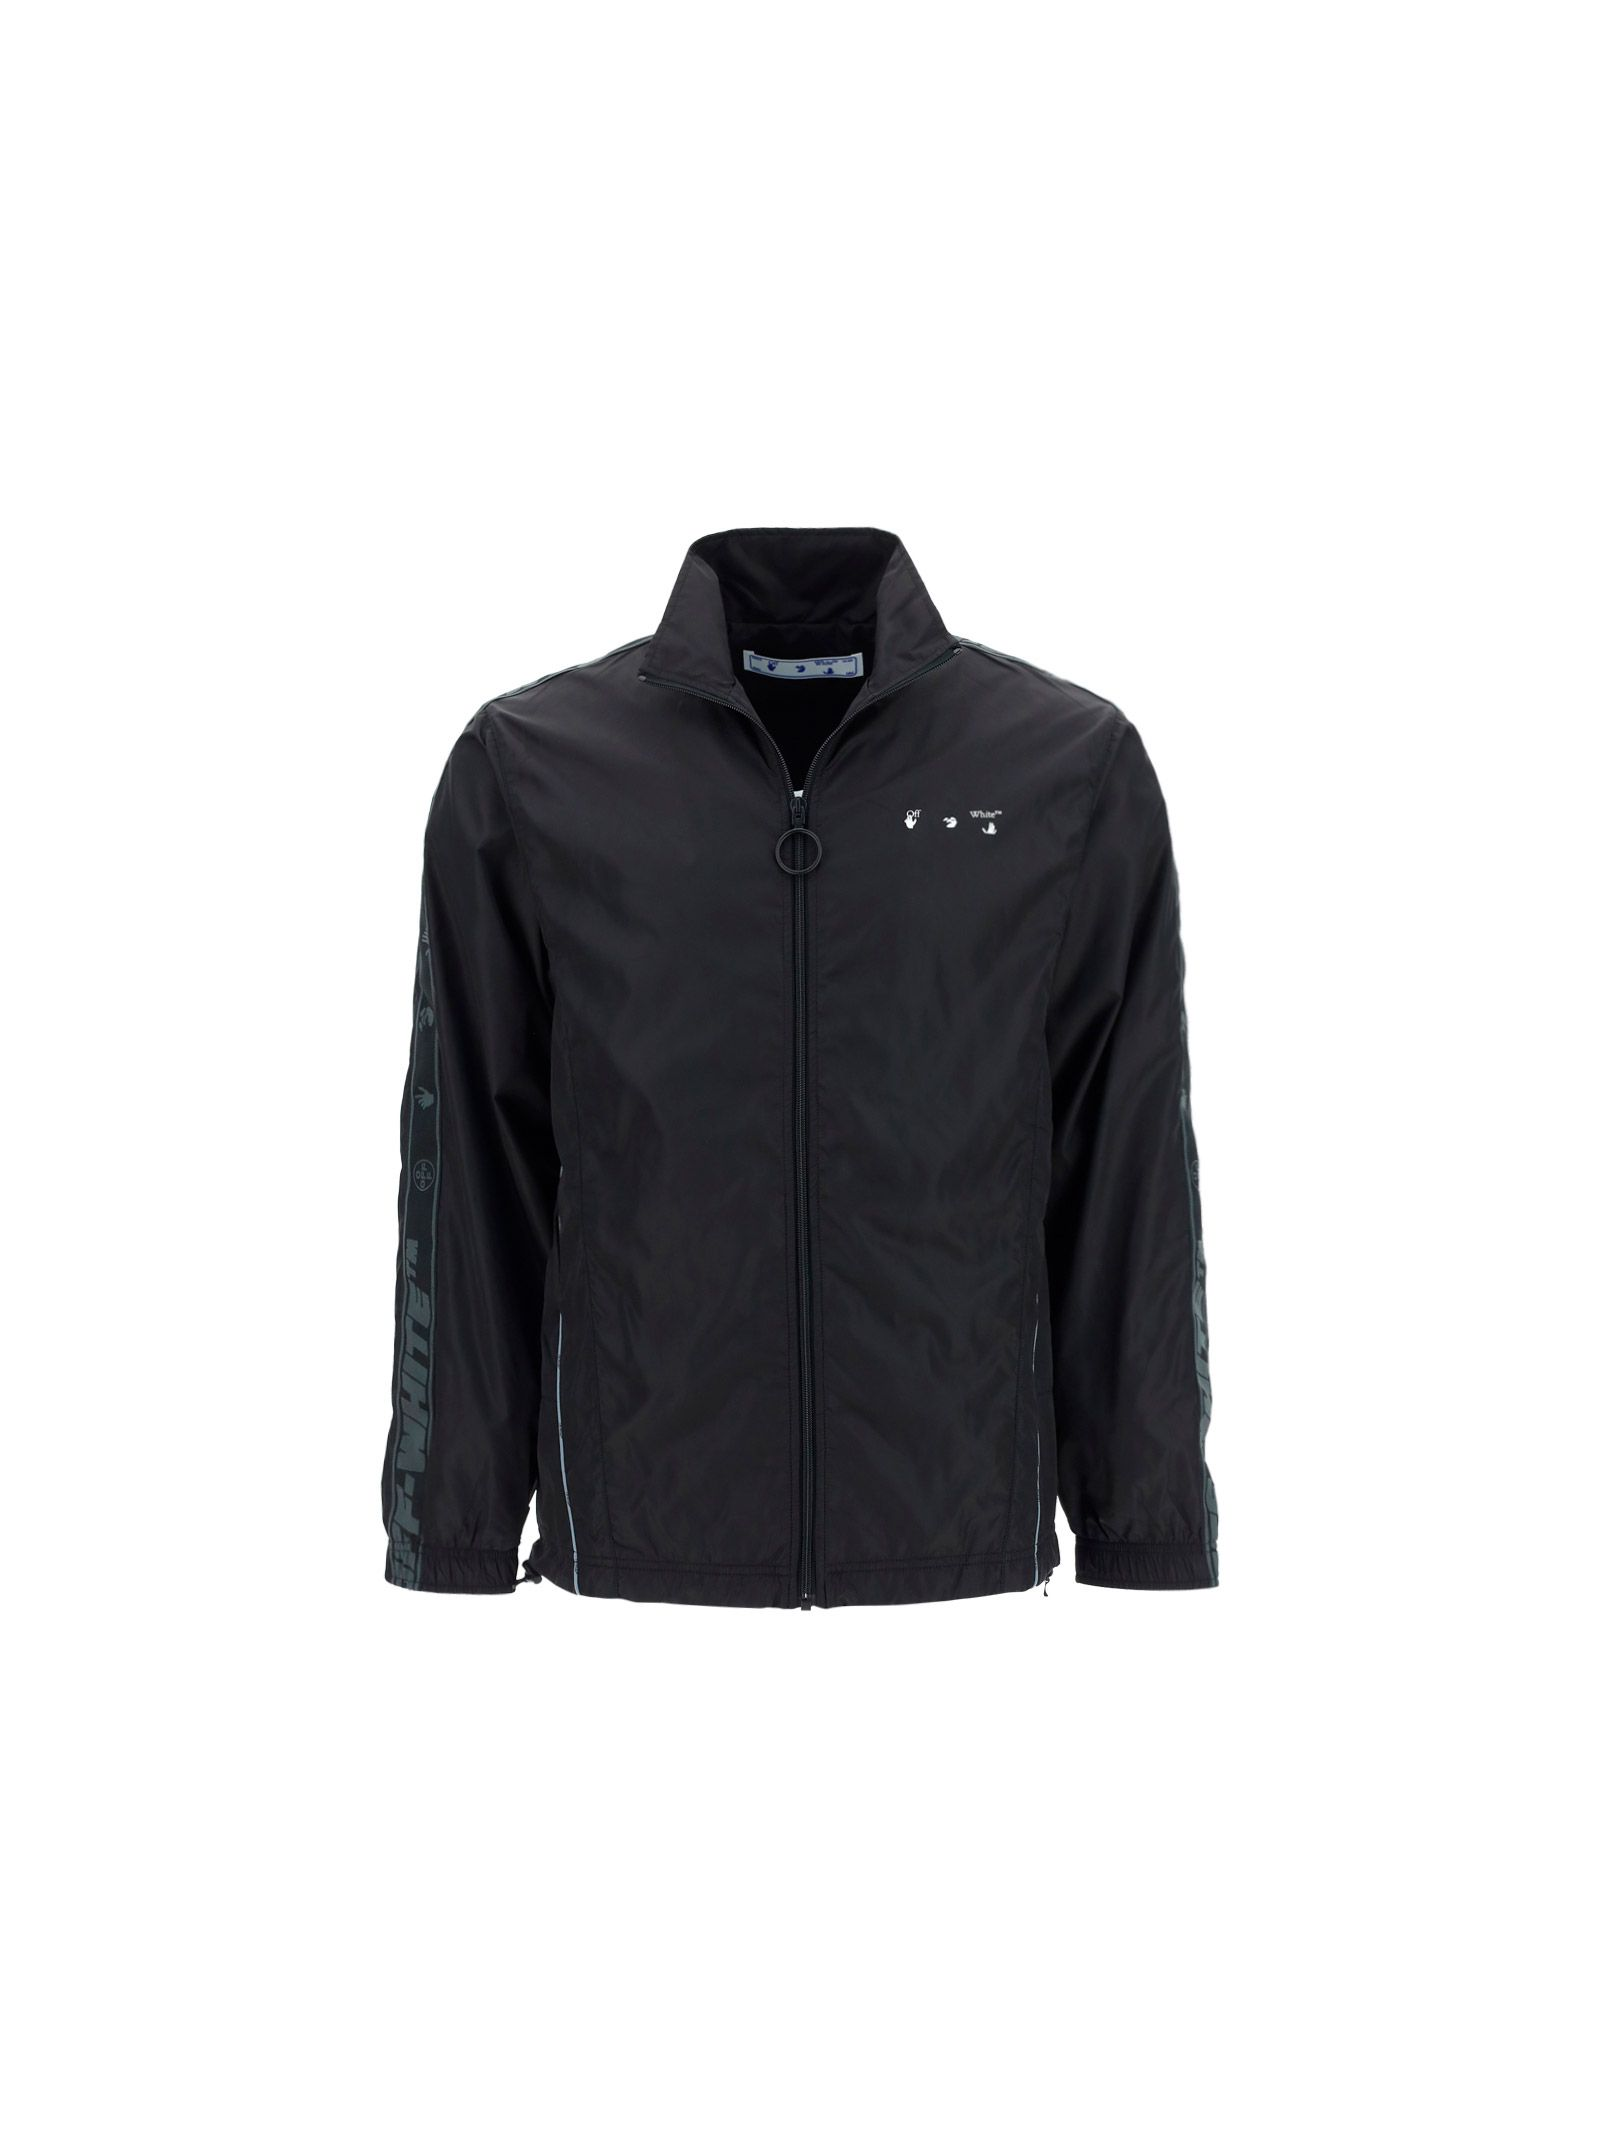 Off-White Jackets OFF-WHITE MEN'S BLACK OTHER MATERIALS OUTERWEAR JACKET